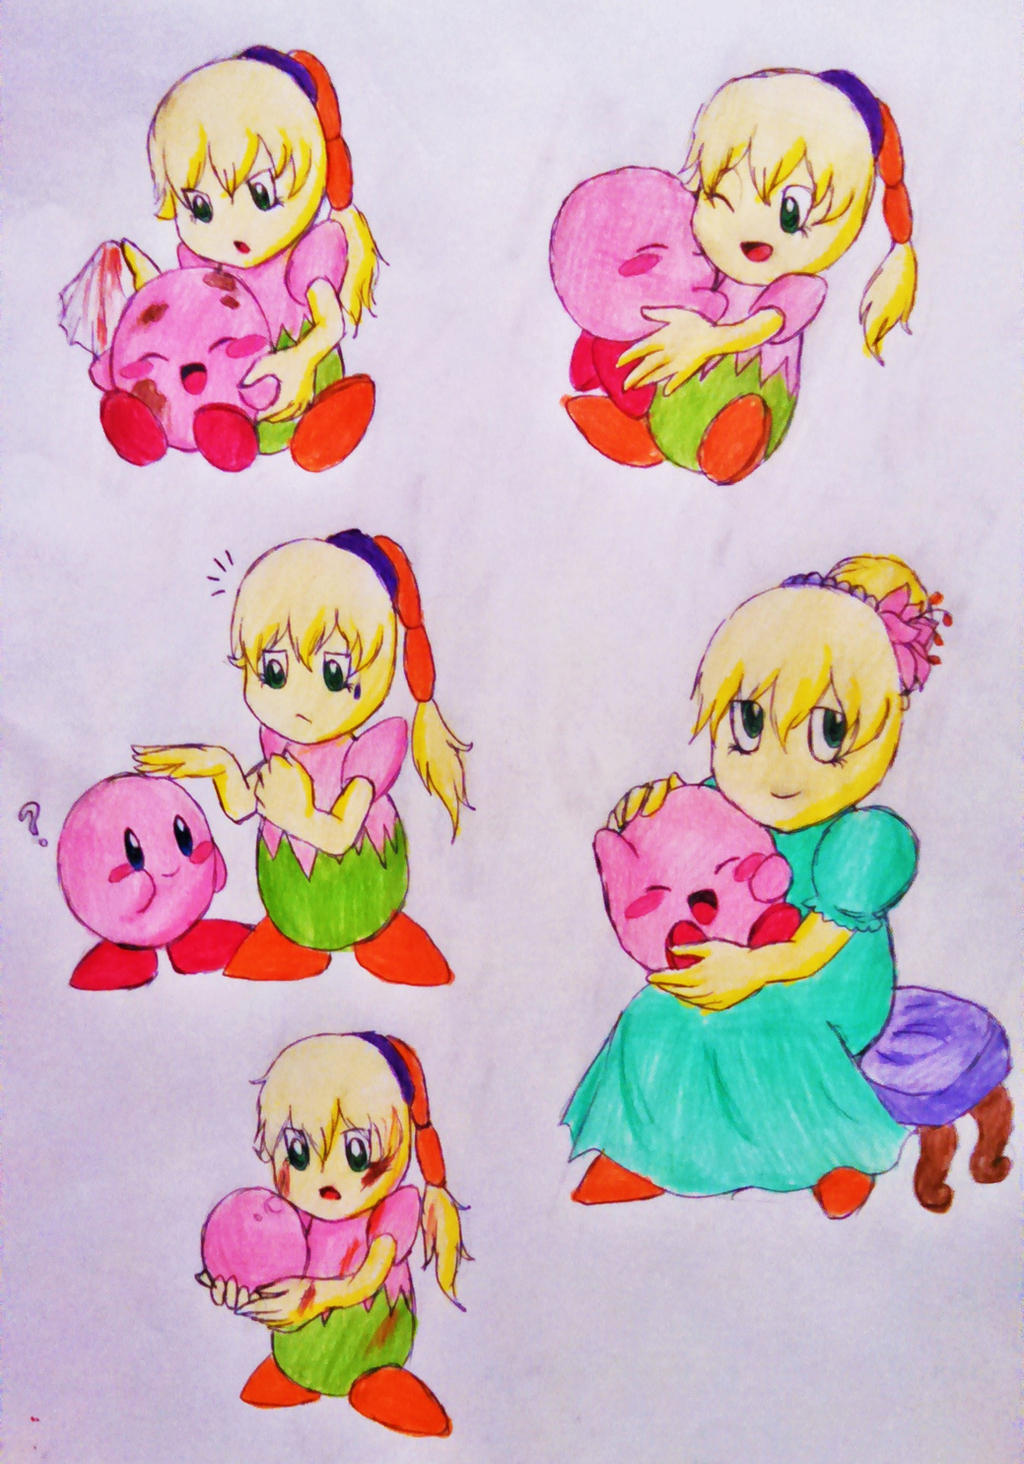 Kirby and fumu doodles by dreampuppeteer on deviantart kirby and fumu doodles by dreampuppeteer kirby and fumu doodles by dreampuppeteer voltagebd Image collections